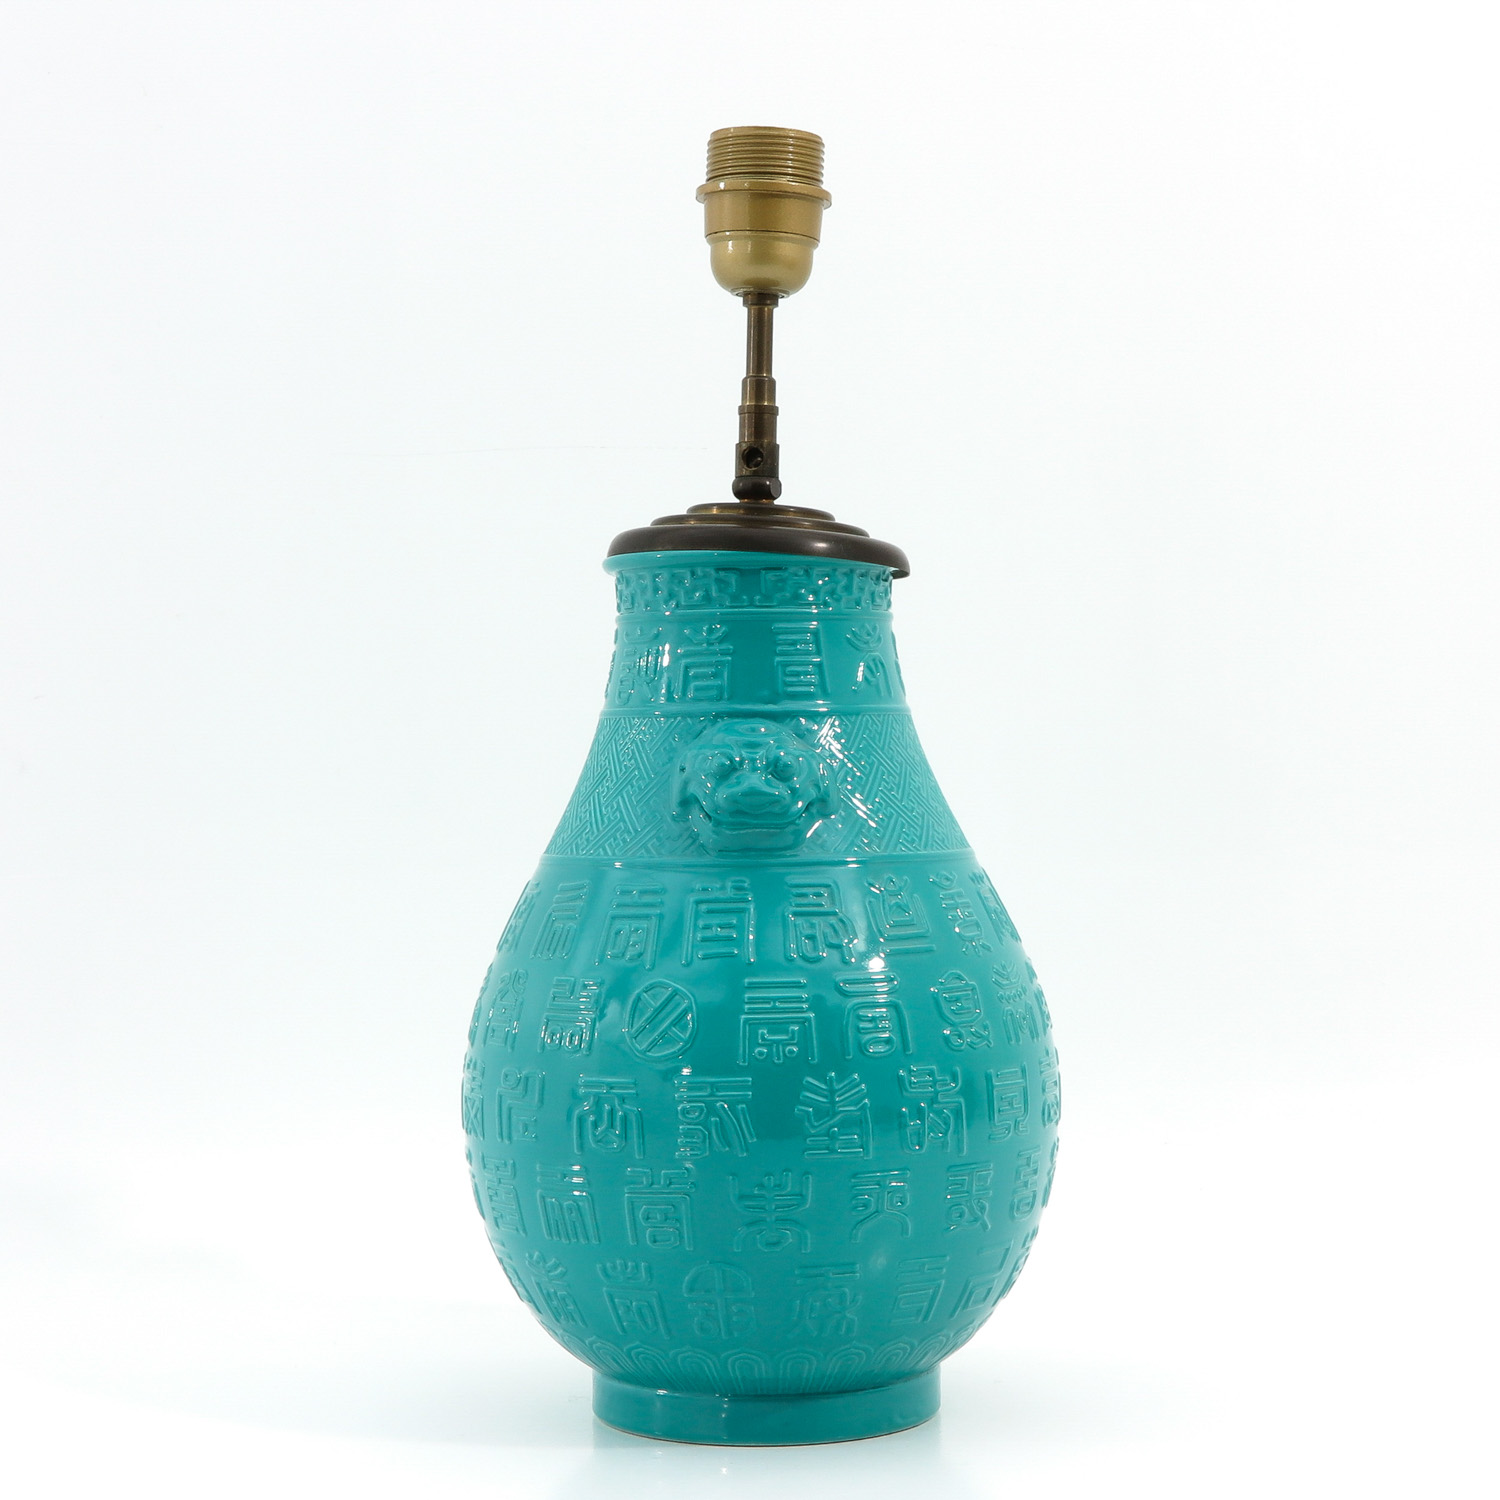 A Turqoise Glaze Lamp - Image 2 of 10